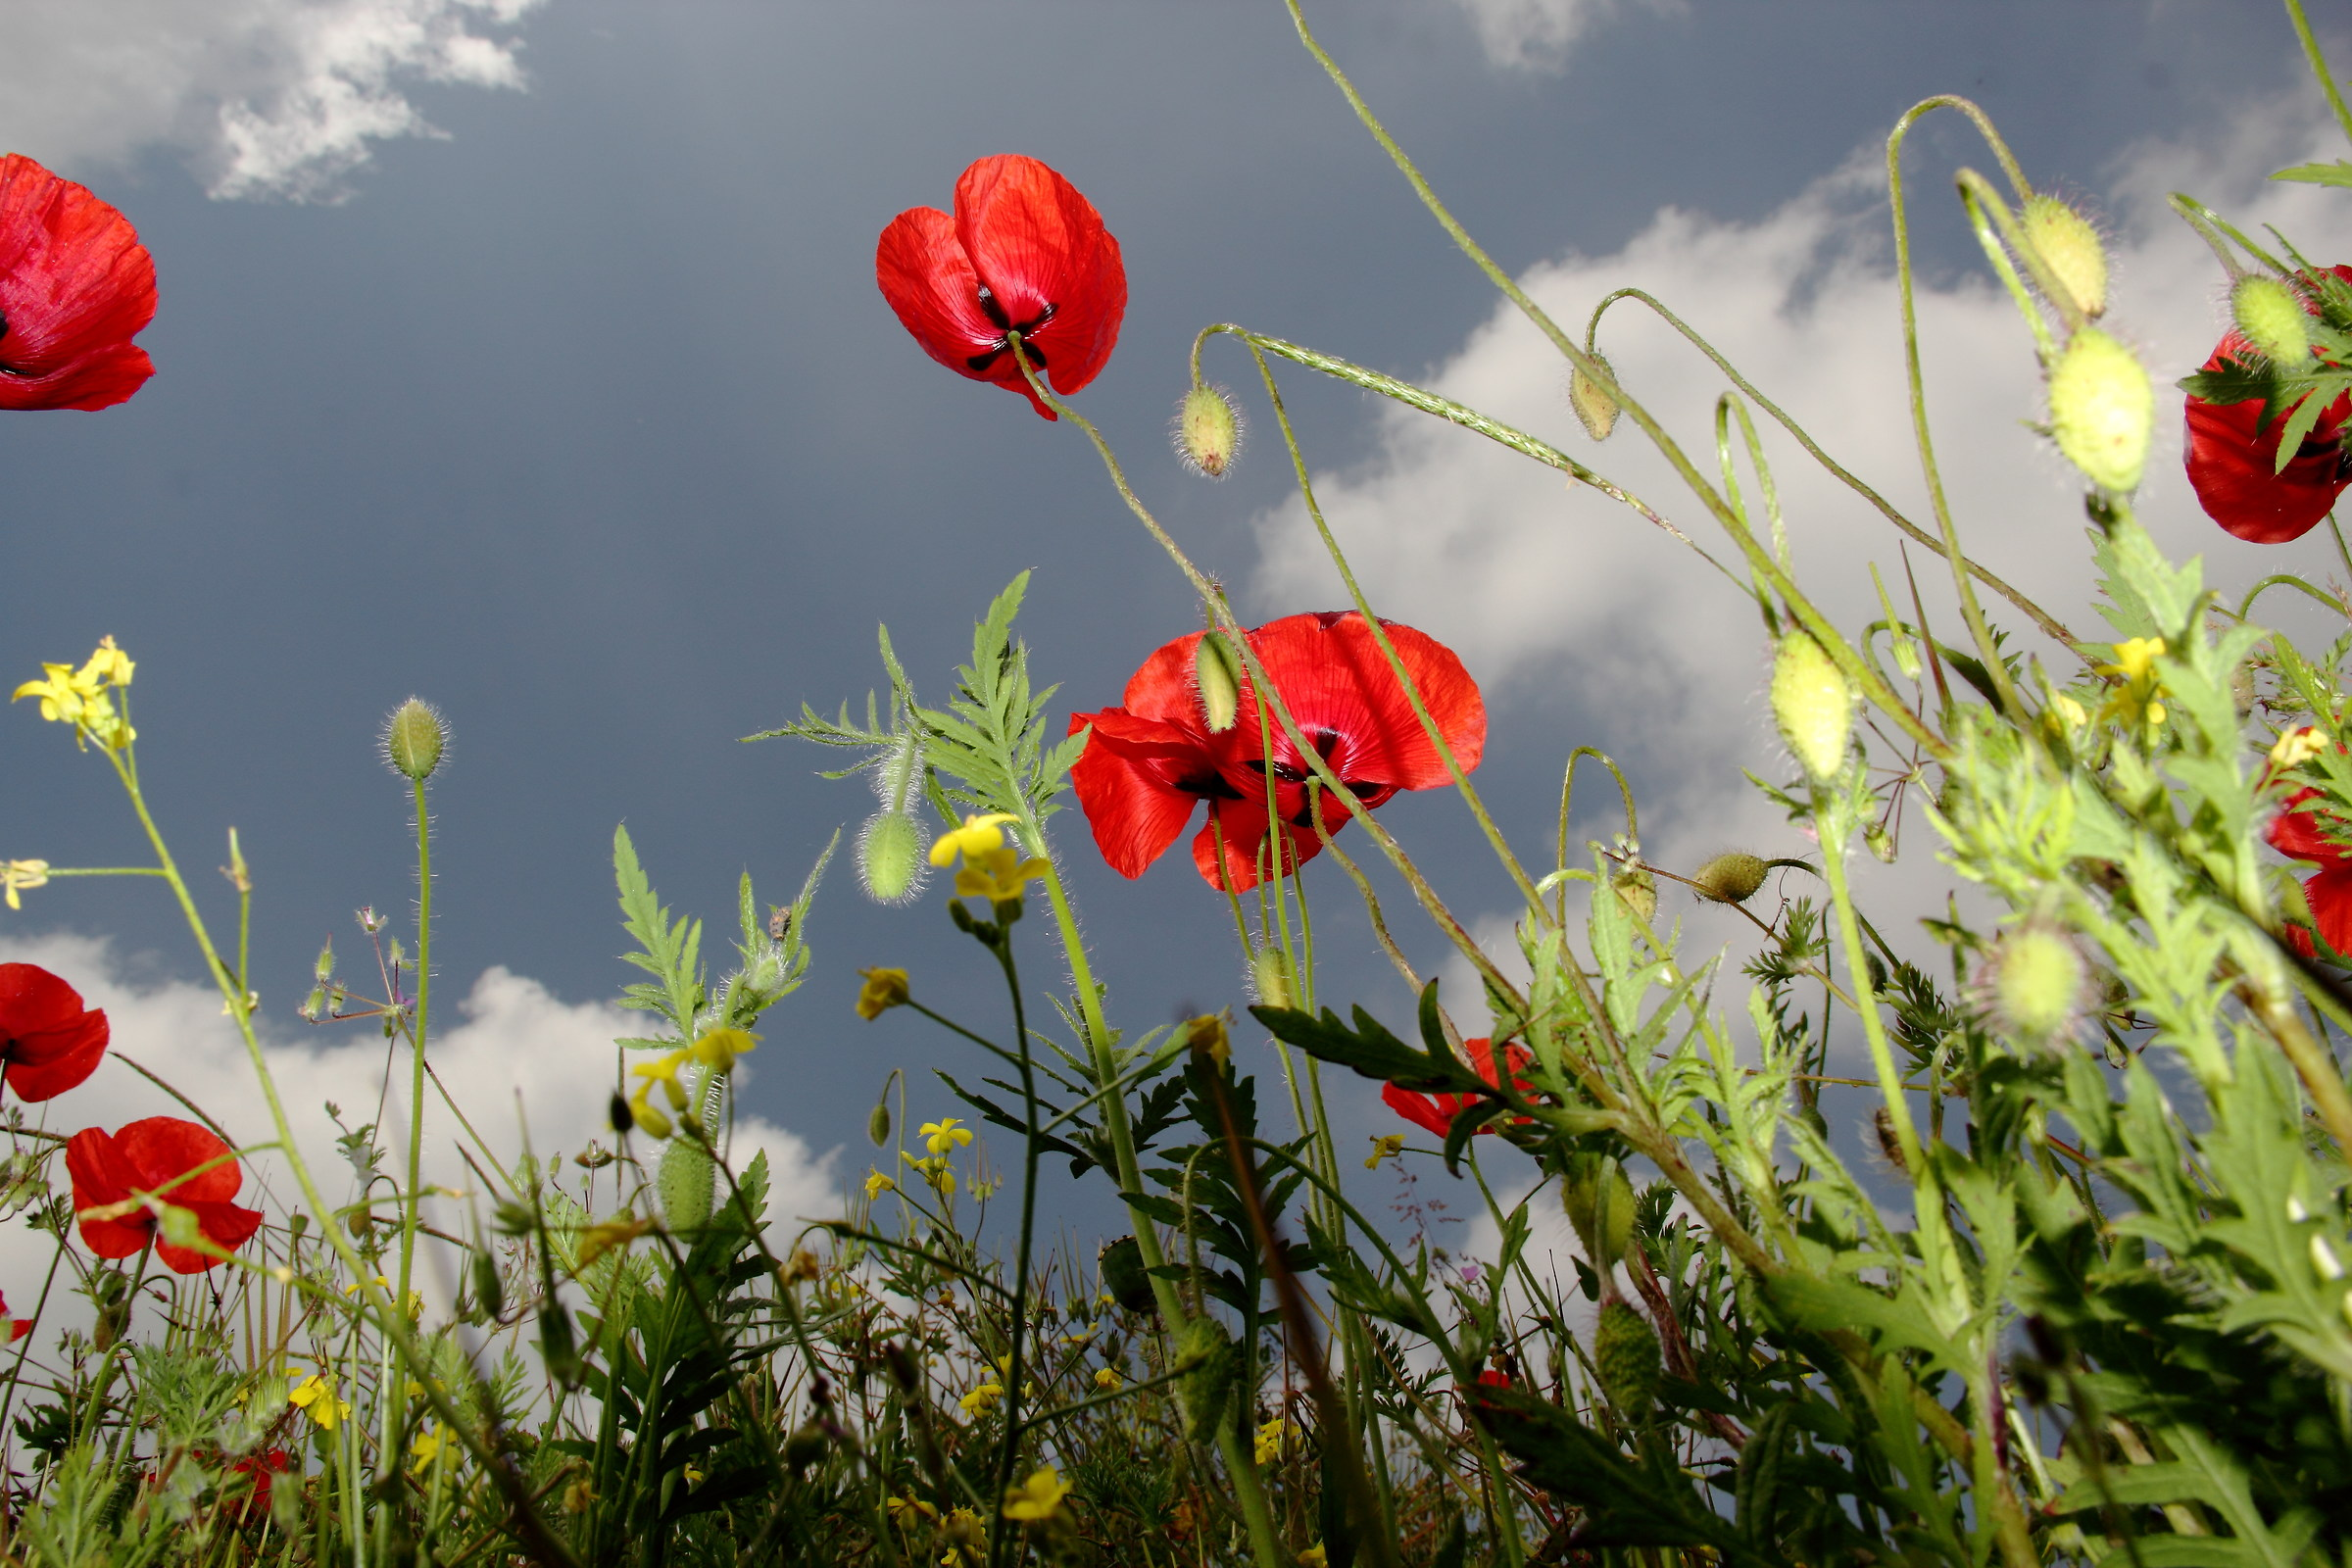 The poppies are tall....